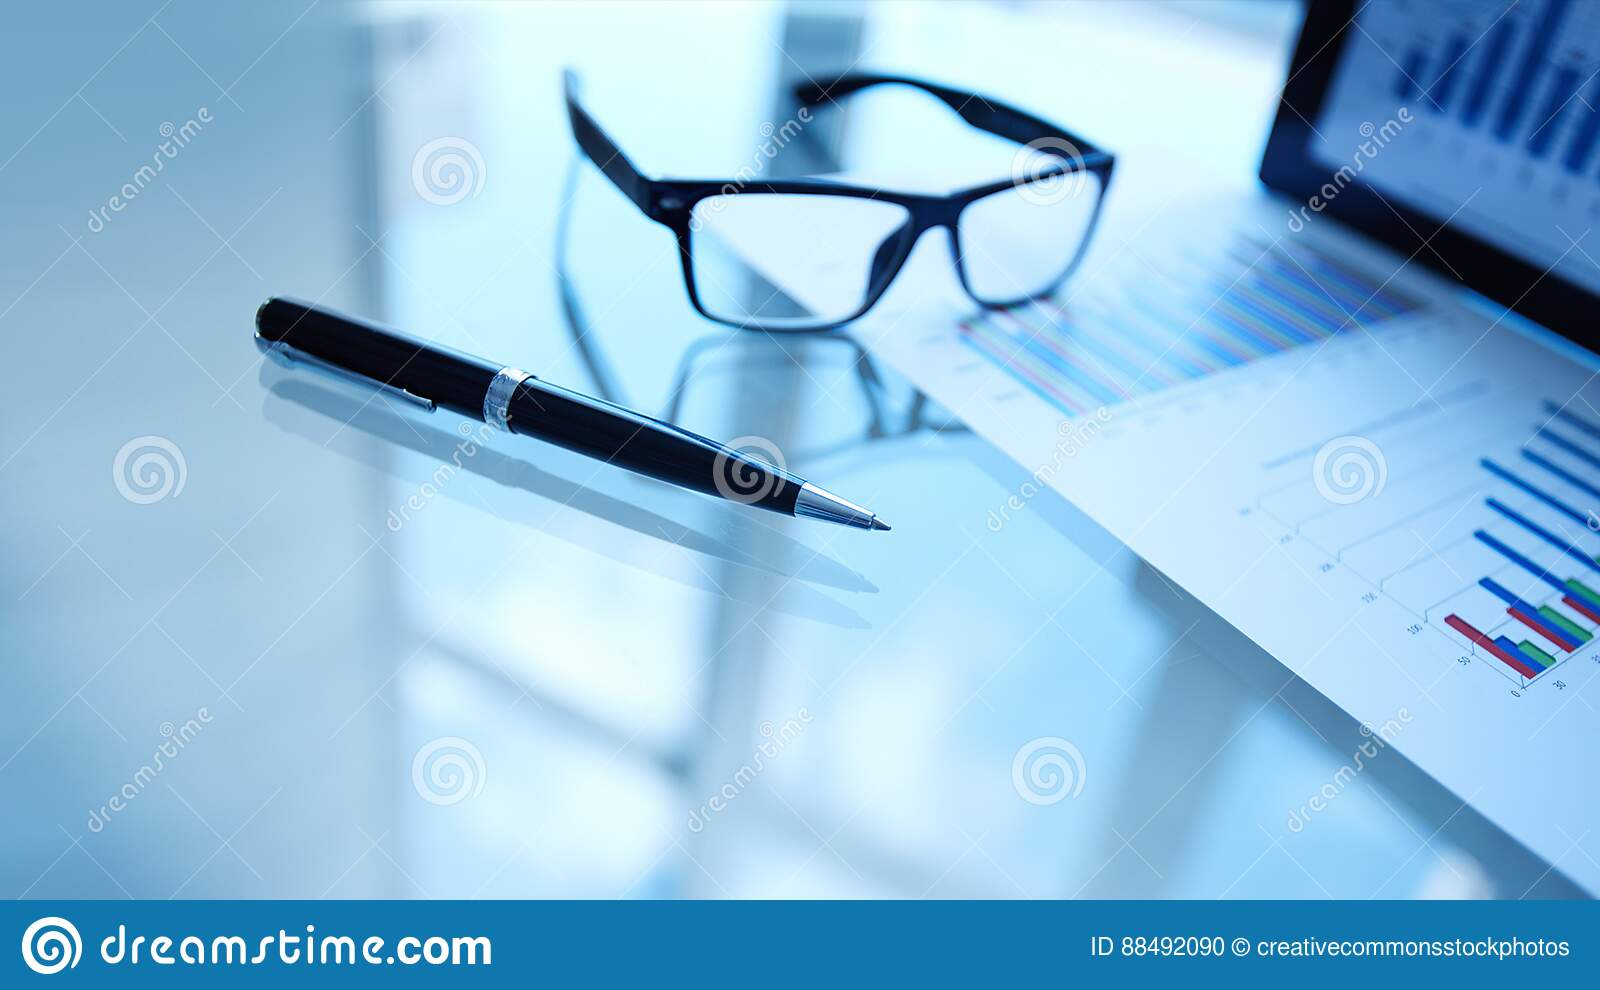 Glasses and pen next to business data